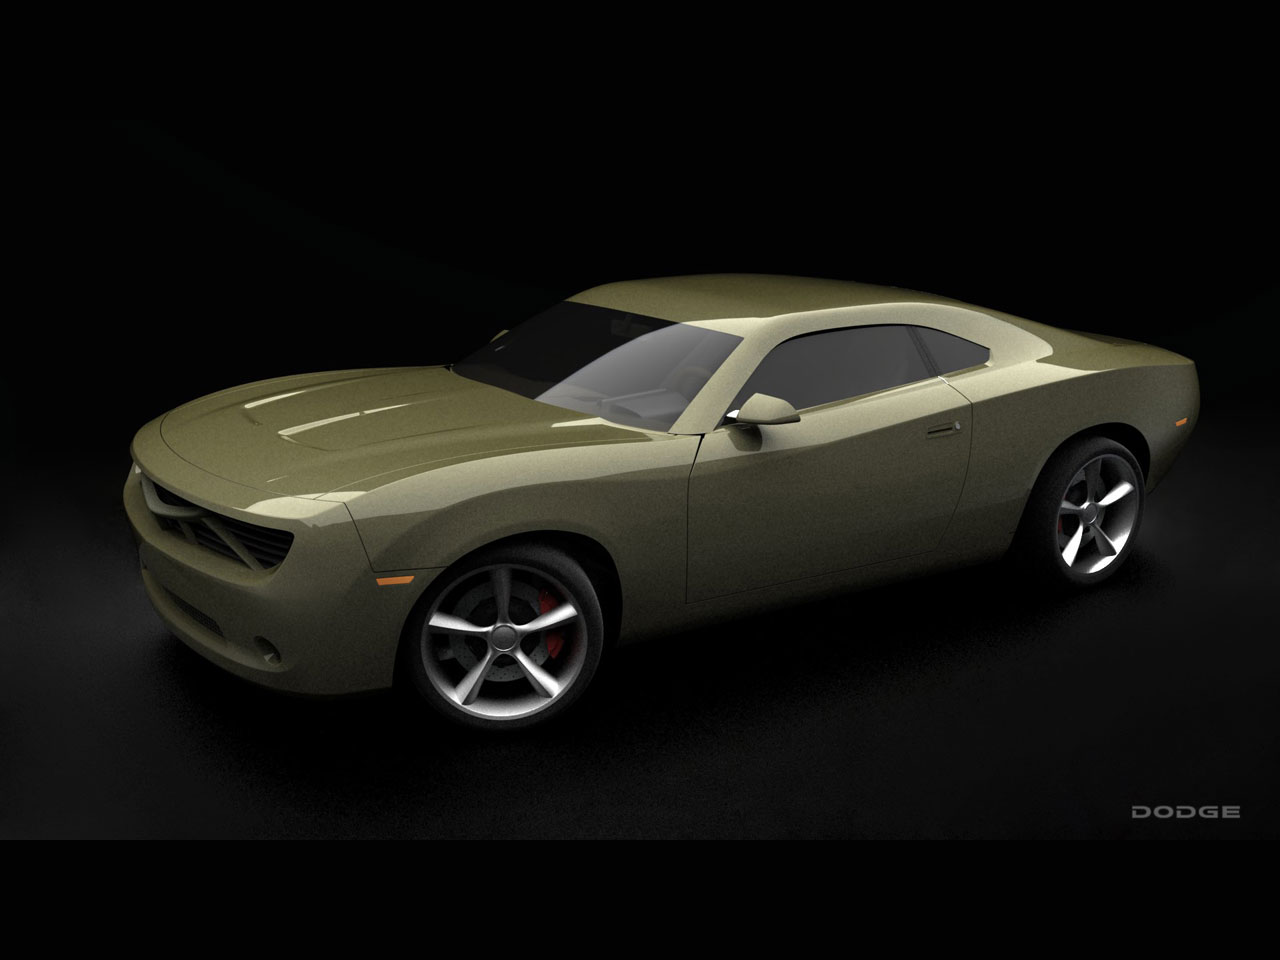 Dodge Charger Concept Amcarguide Com American Muscle Car Guide